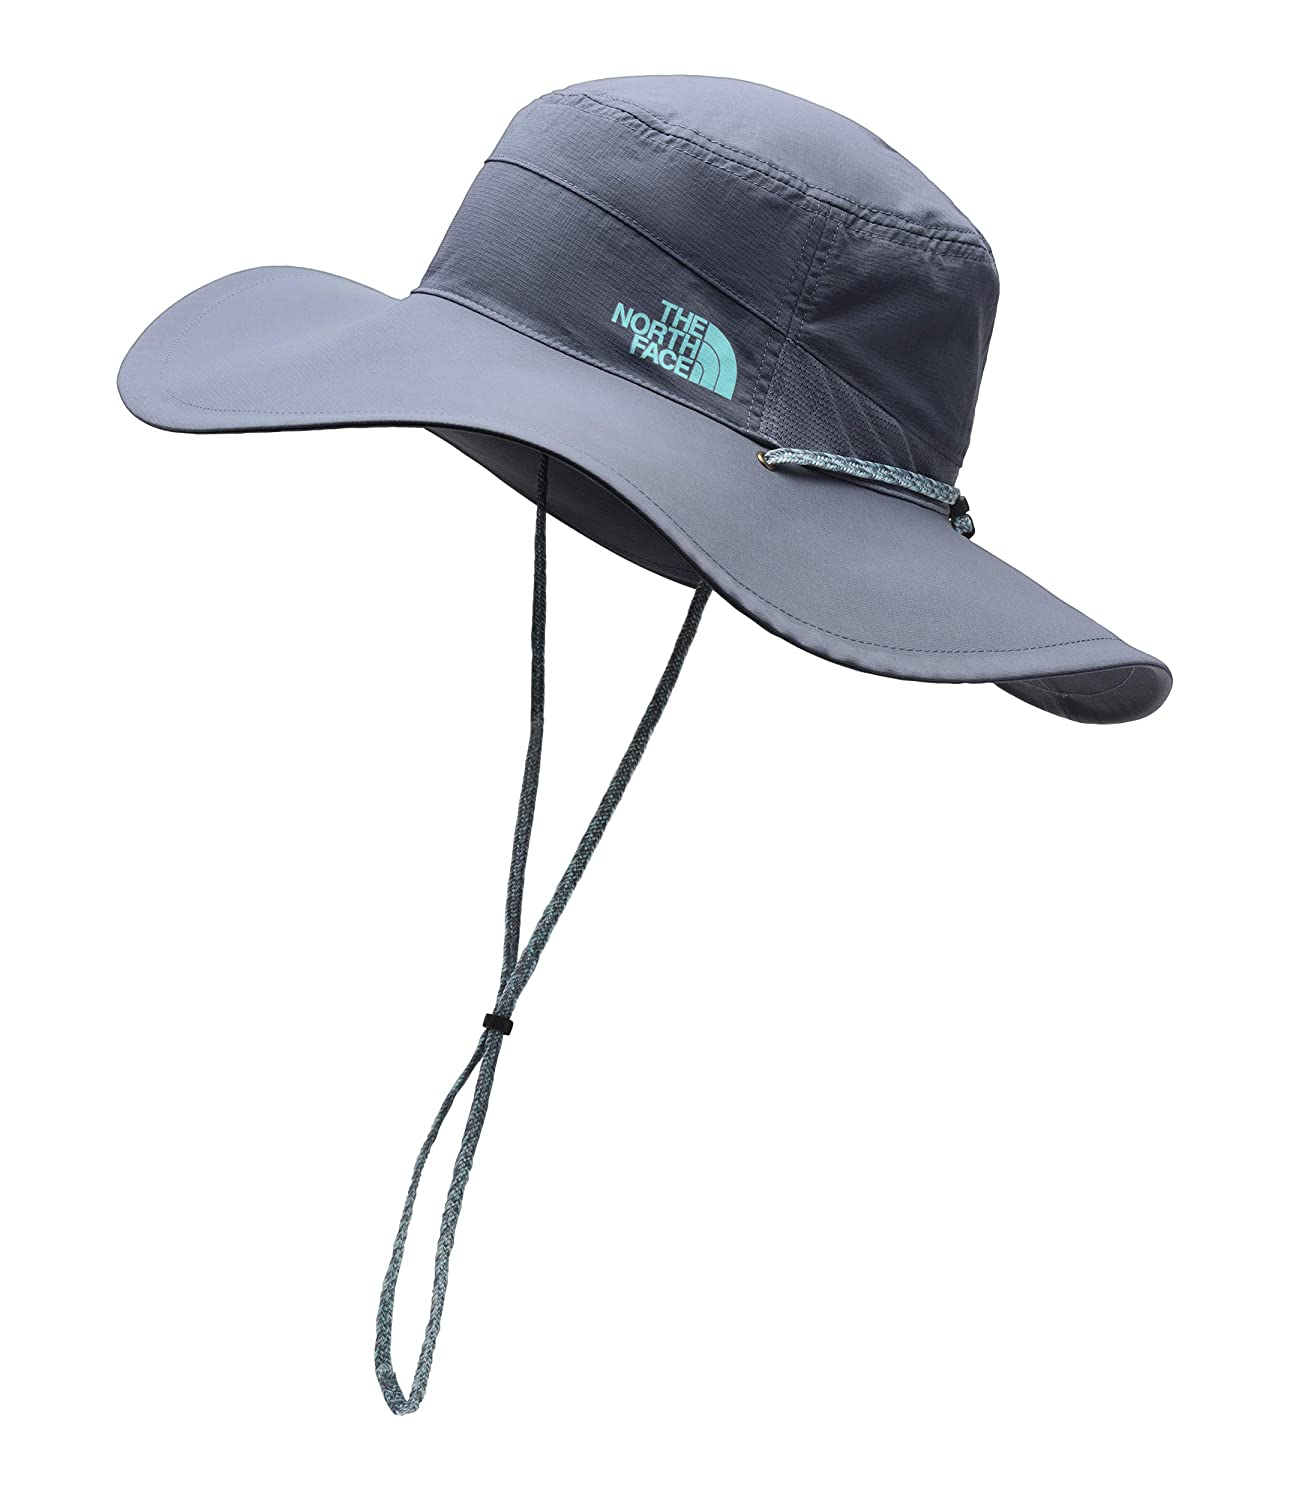 aa623fbe41a The North Face Women s Horizon Brimmer Hat at Amazon Women s Clothing store